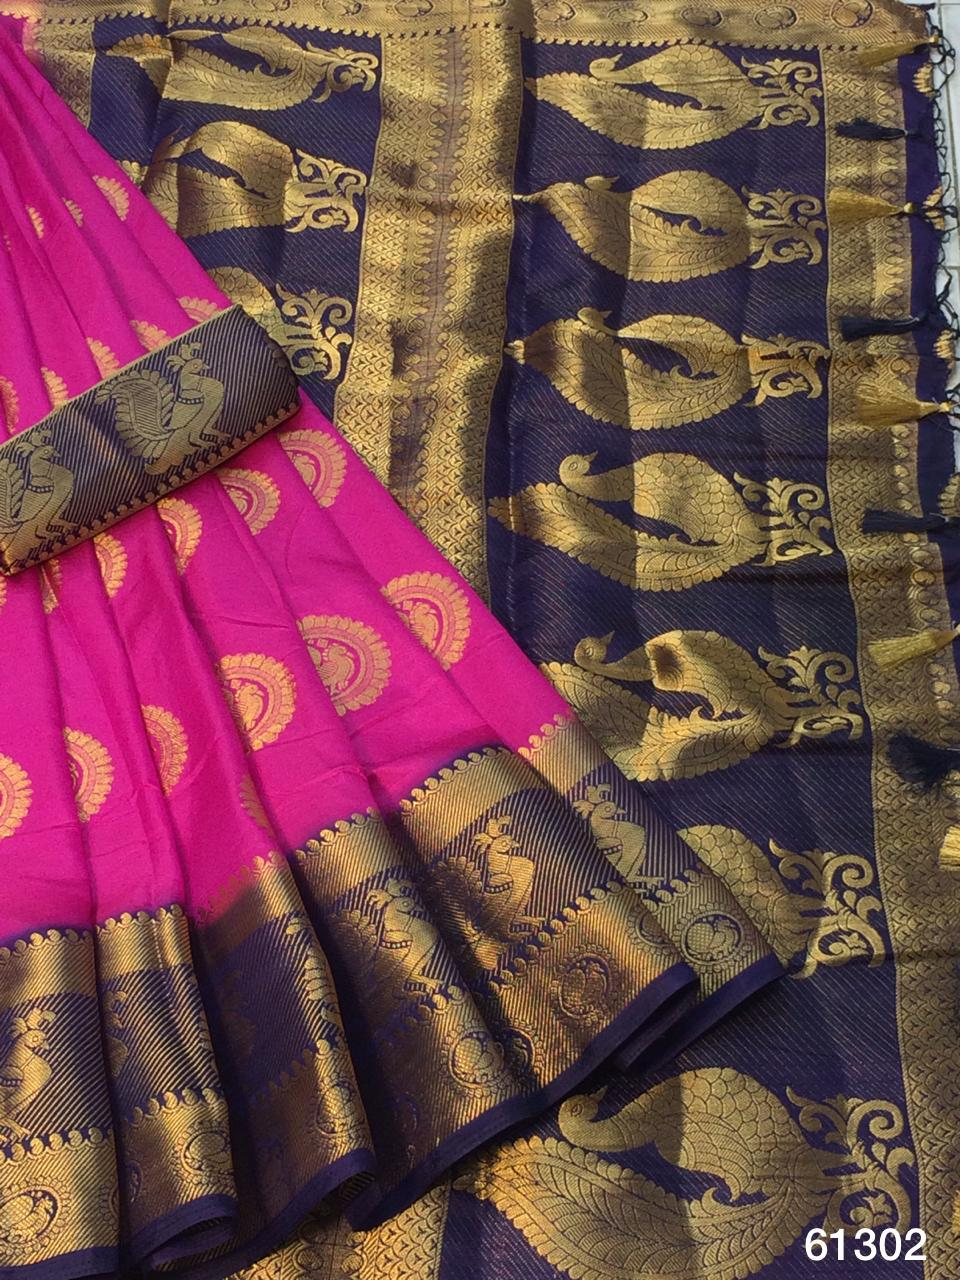 Party Rani Pink Color Beautiful Grand Pallu Nylon Silk Dying Material Saree Blouse For Party Wear